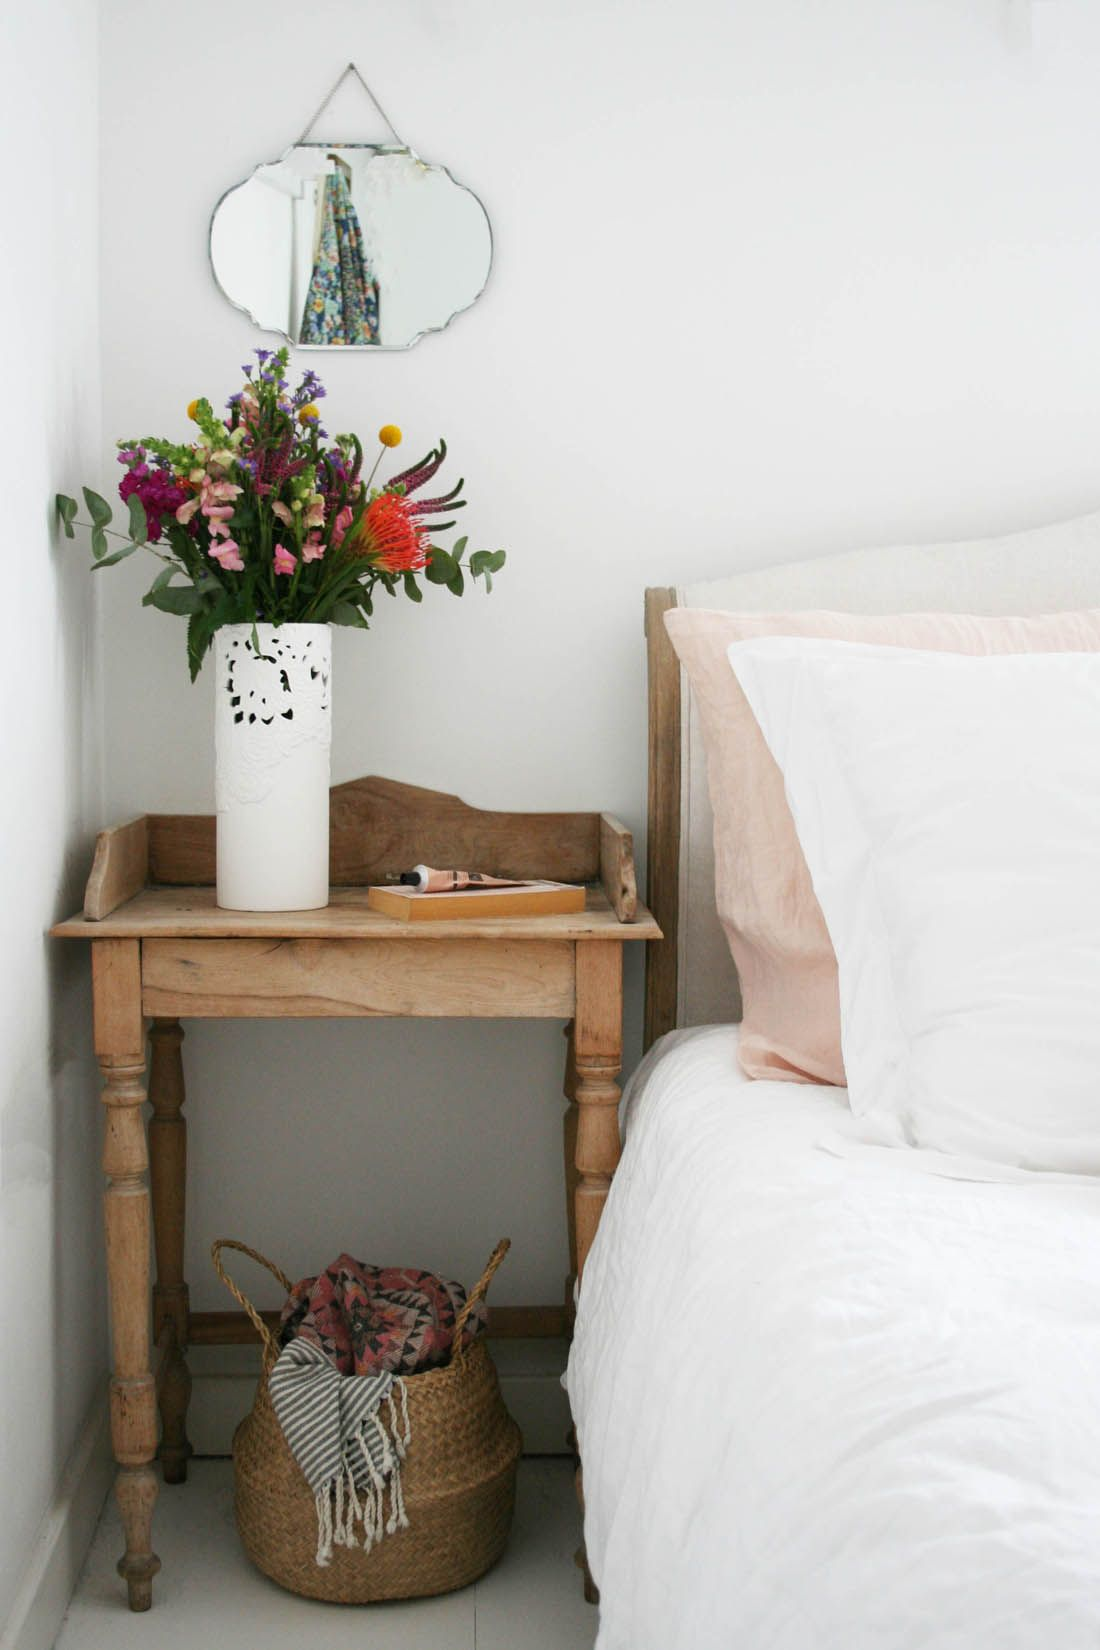 minimal white bedroom with accents of dusky pink and vintage bedside table with an autumnal bouquet of flowers